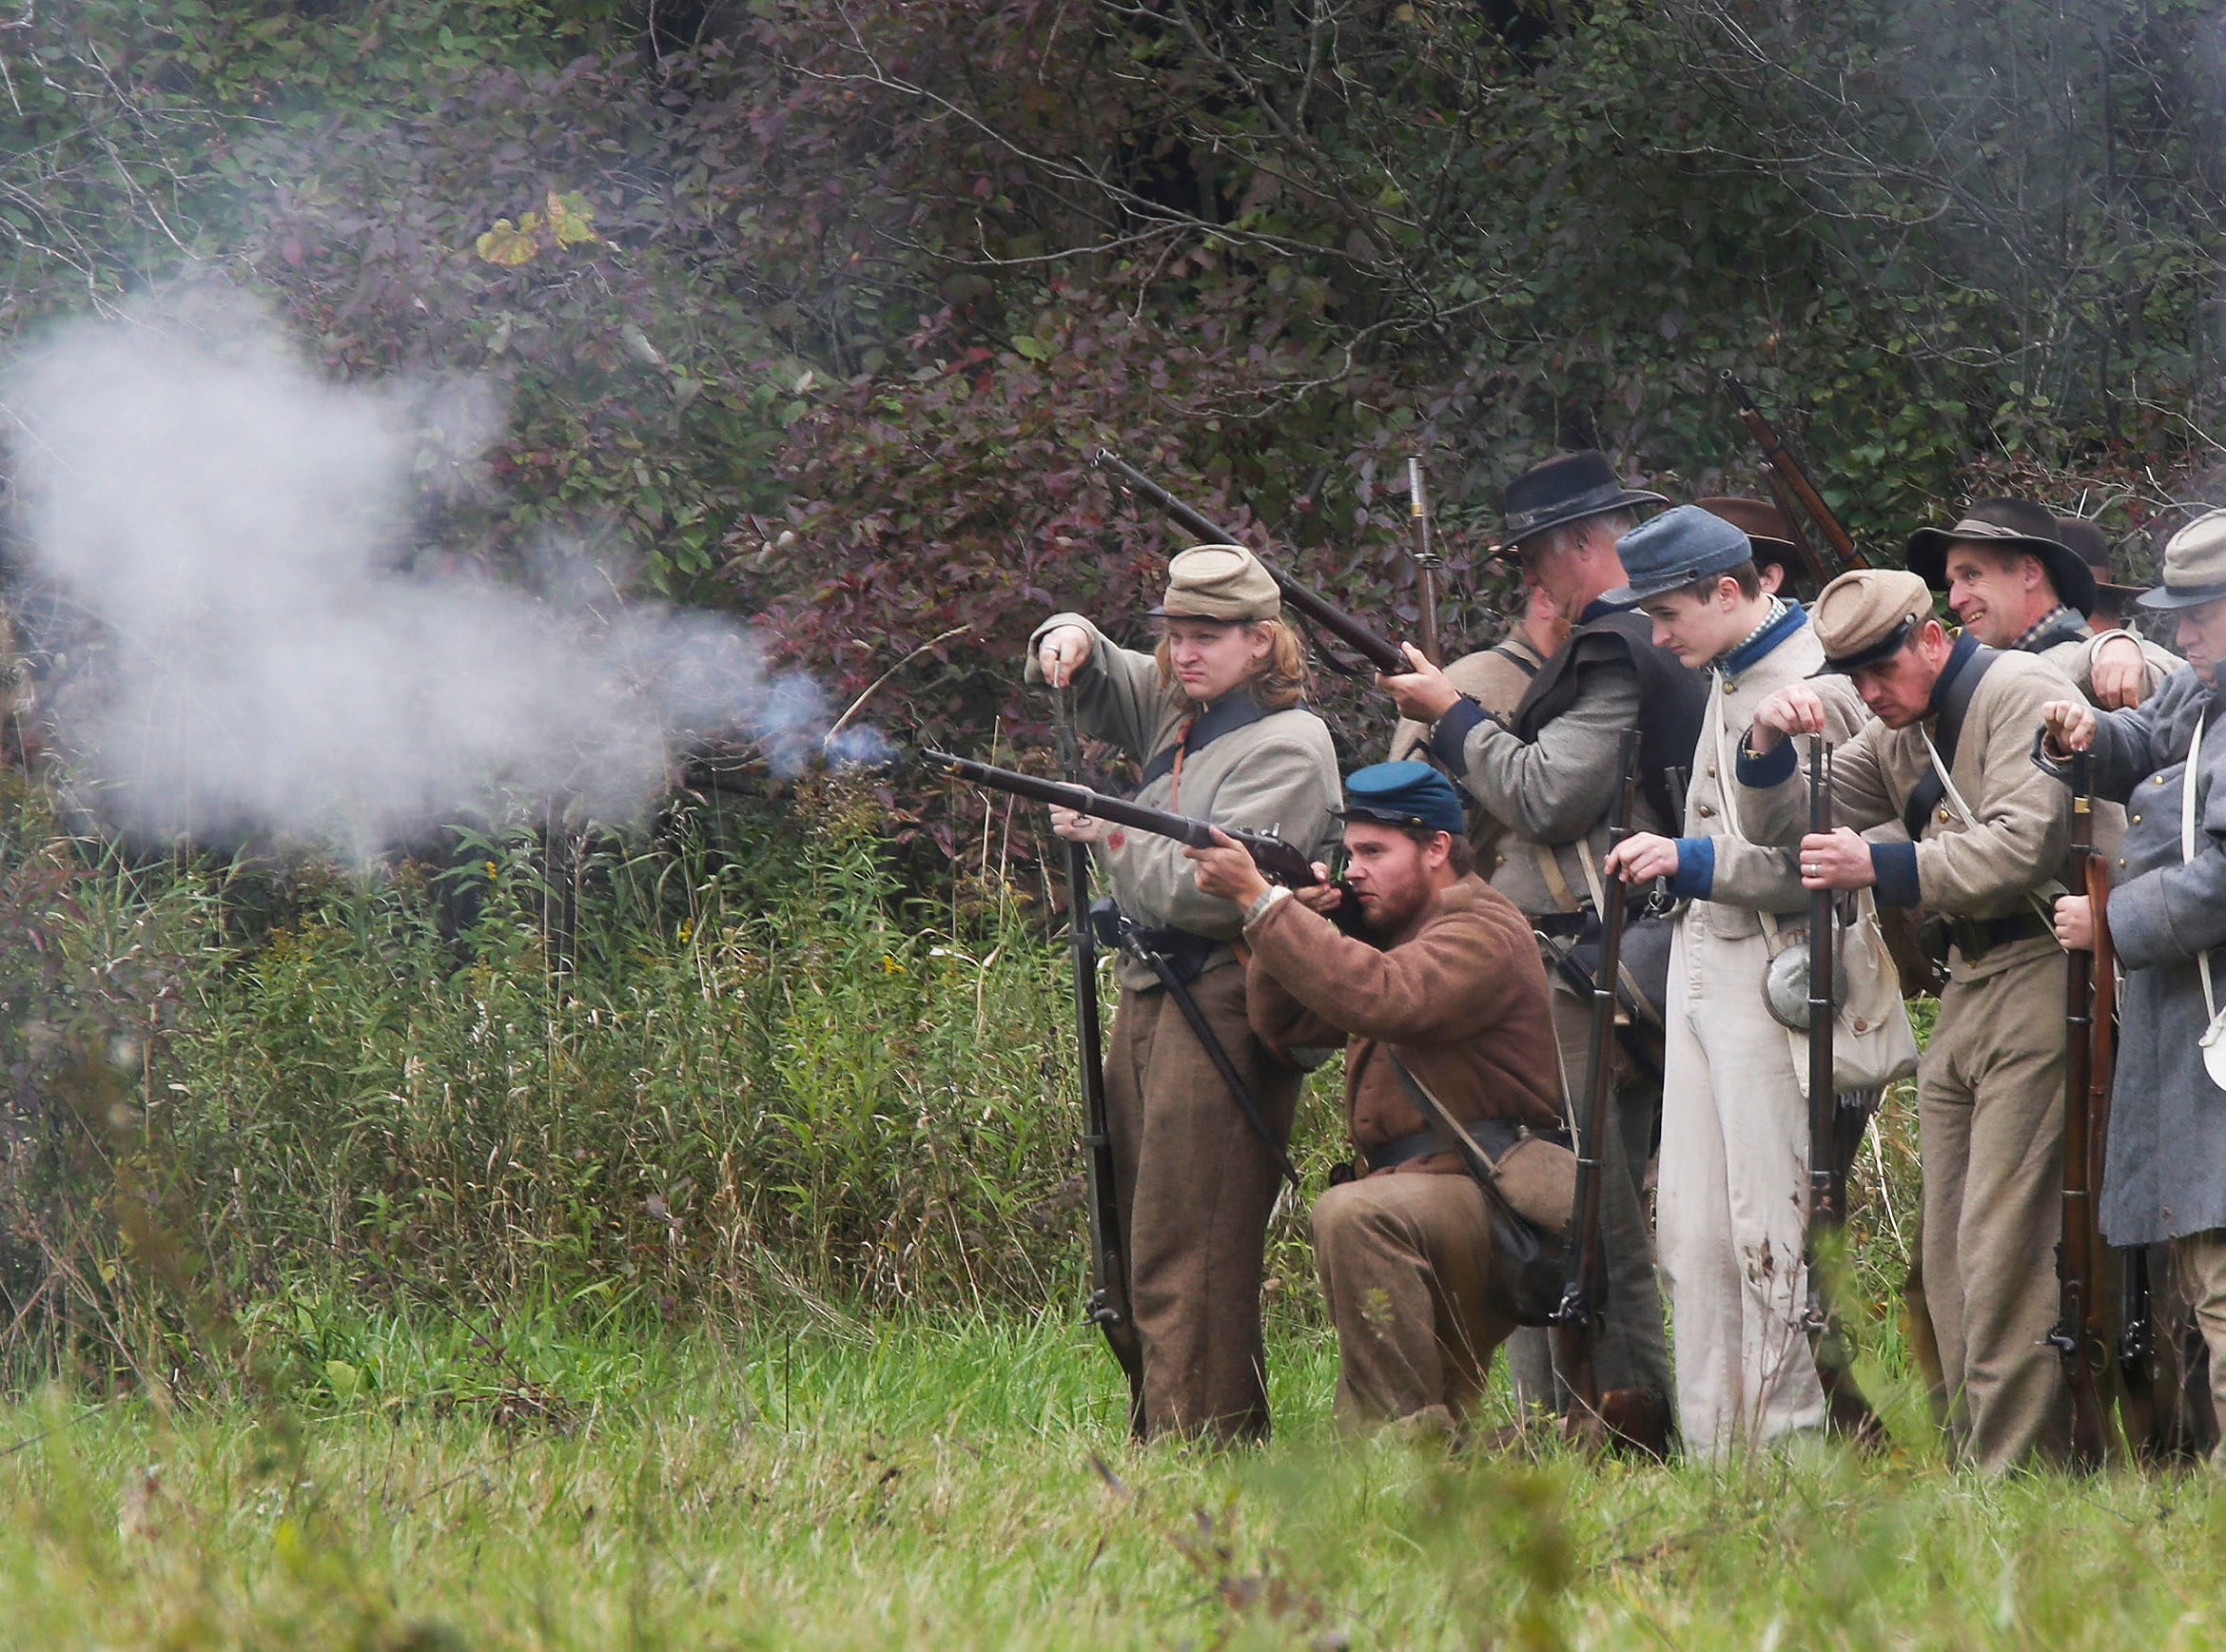 Confederate soldier fire their weapons during battle at the Civil War Weekend at the Wade House, Saturday September 29, 2018, in Greenbush, Wis.